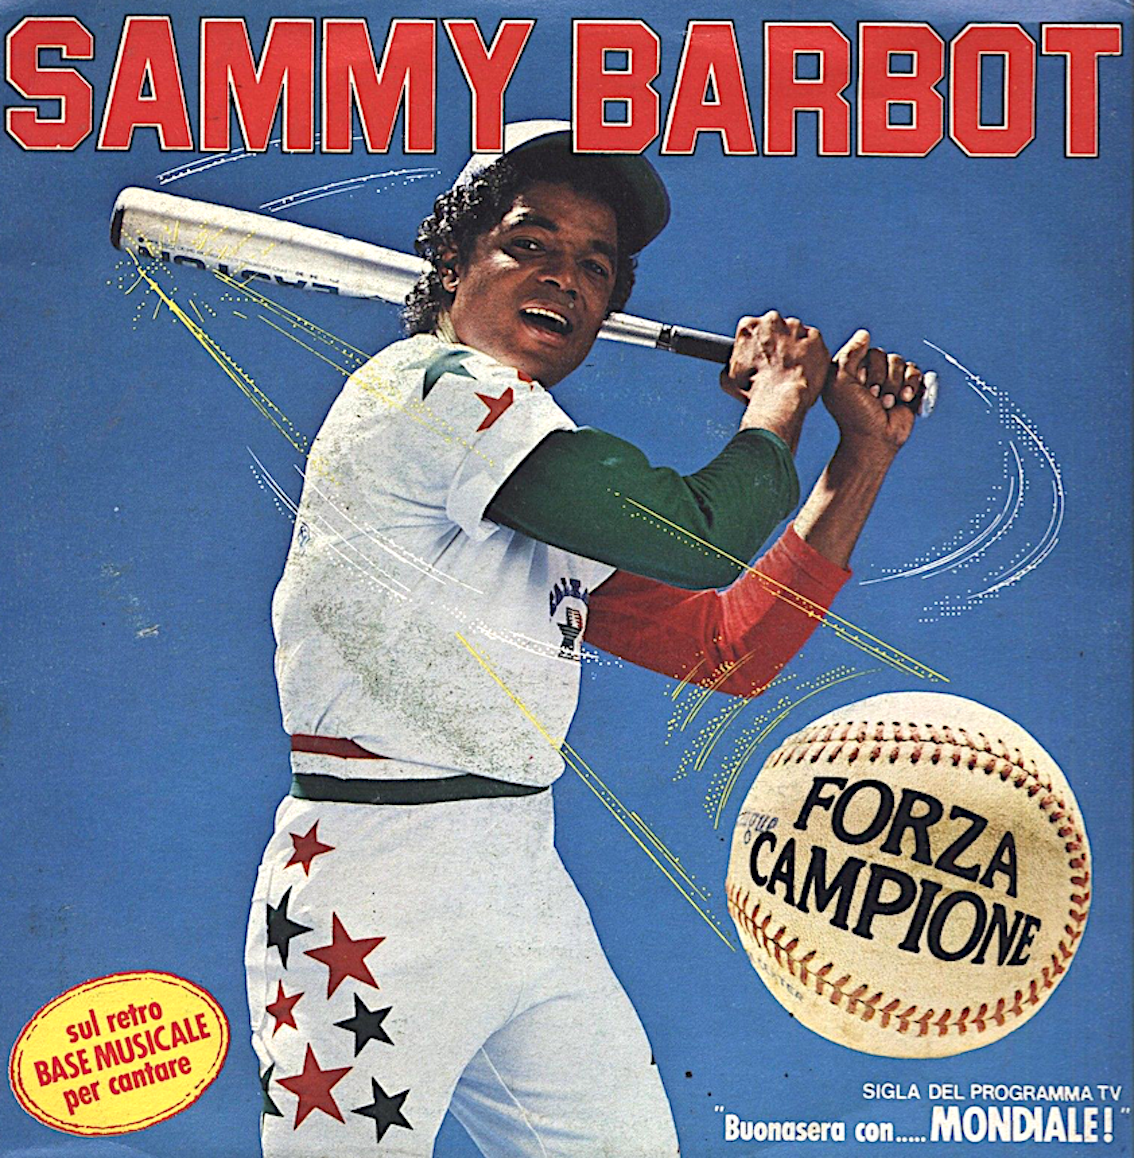 Sammy Barbot